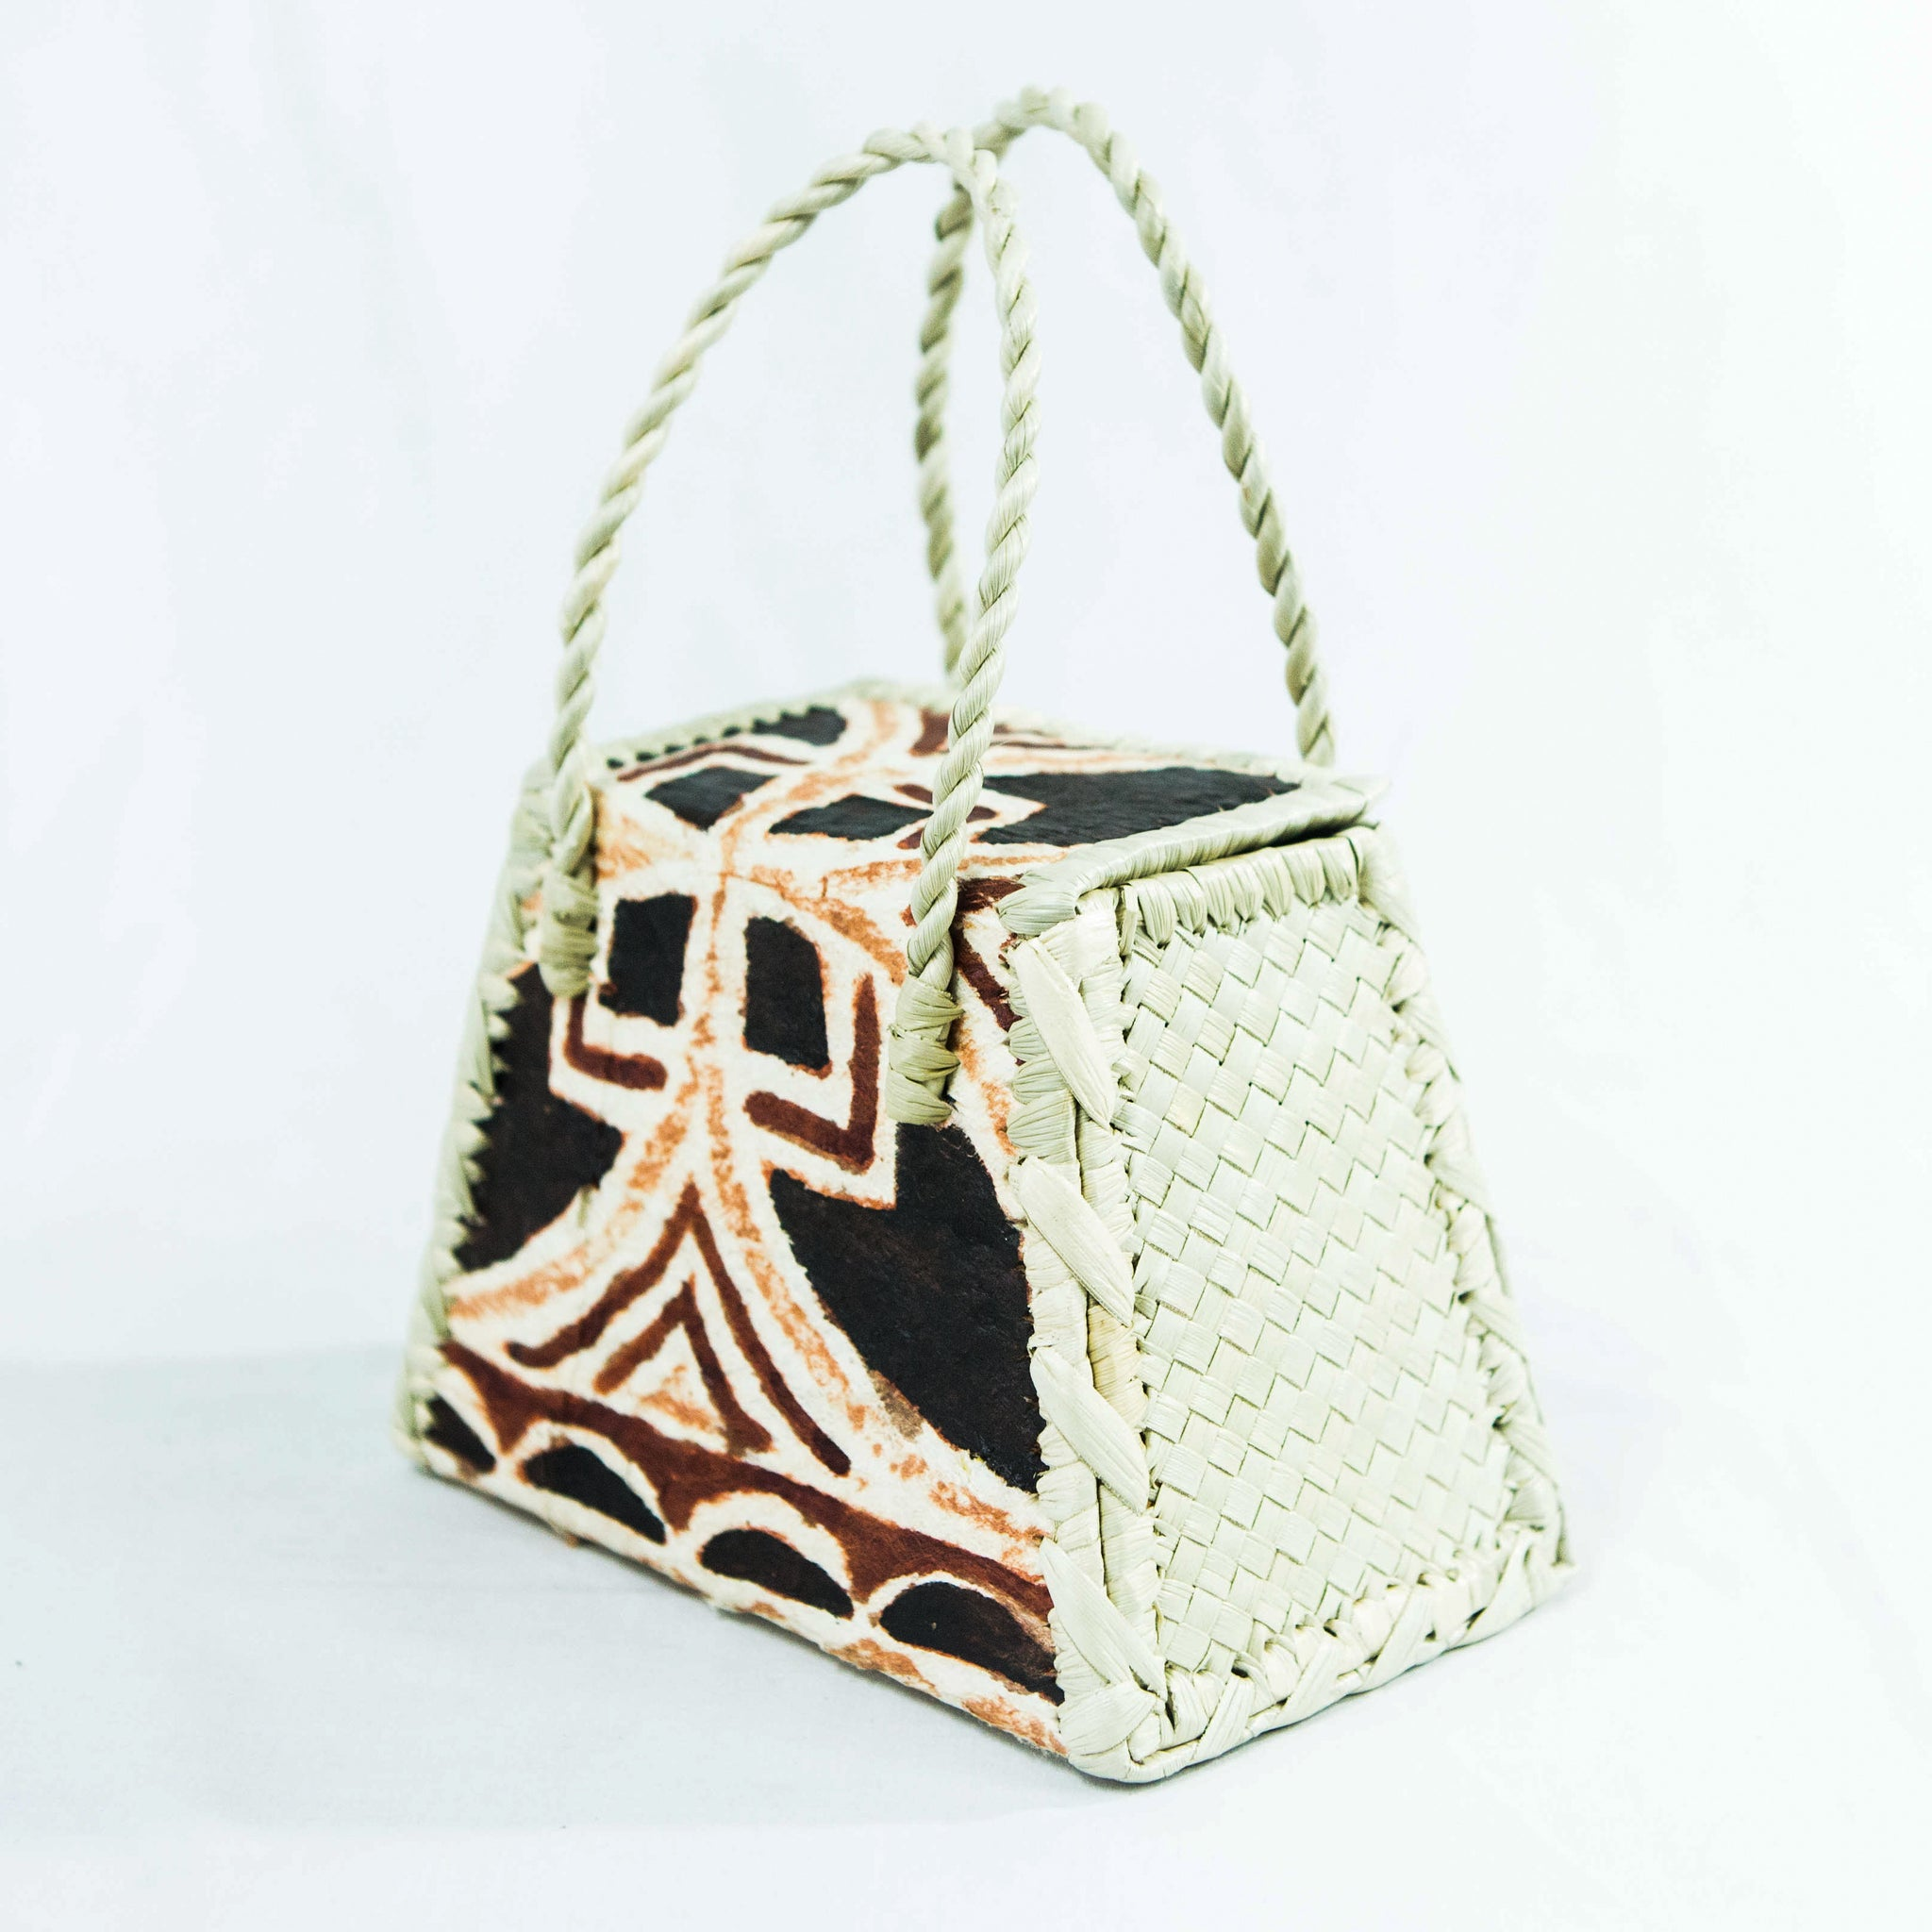 Siapo Trape Bag with Lid